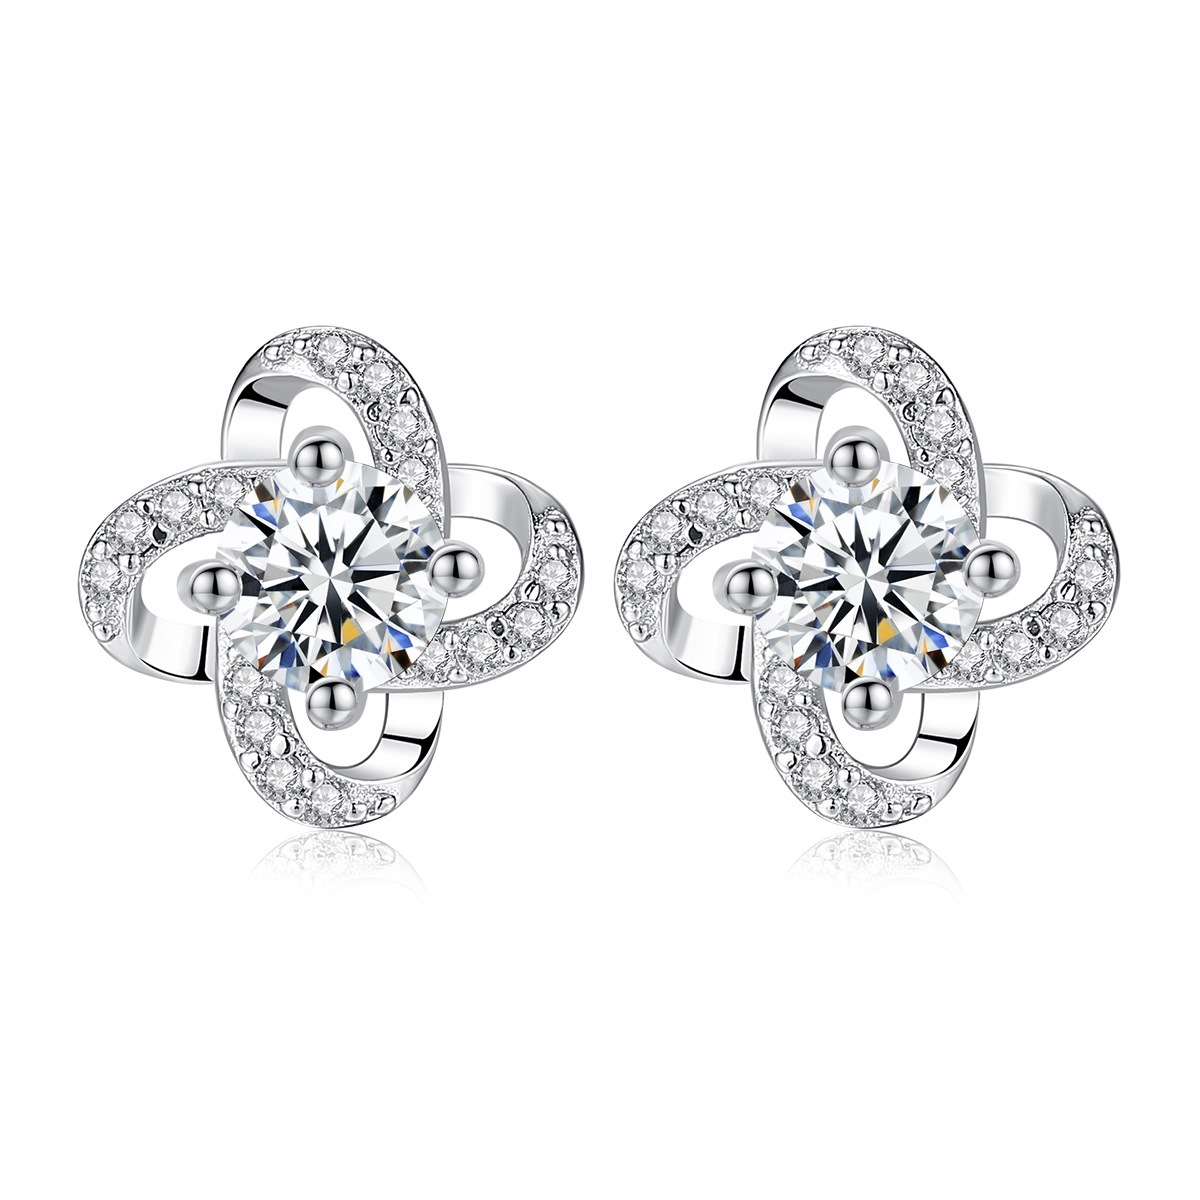 53e087848d0d6 [Hot Item] Small Round 925 Sterling Silver Stud Earrings Jewelry